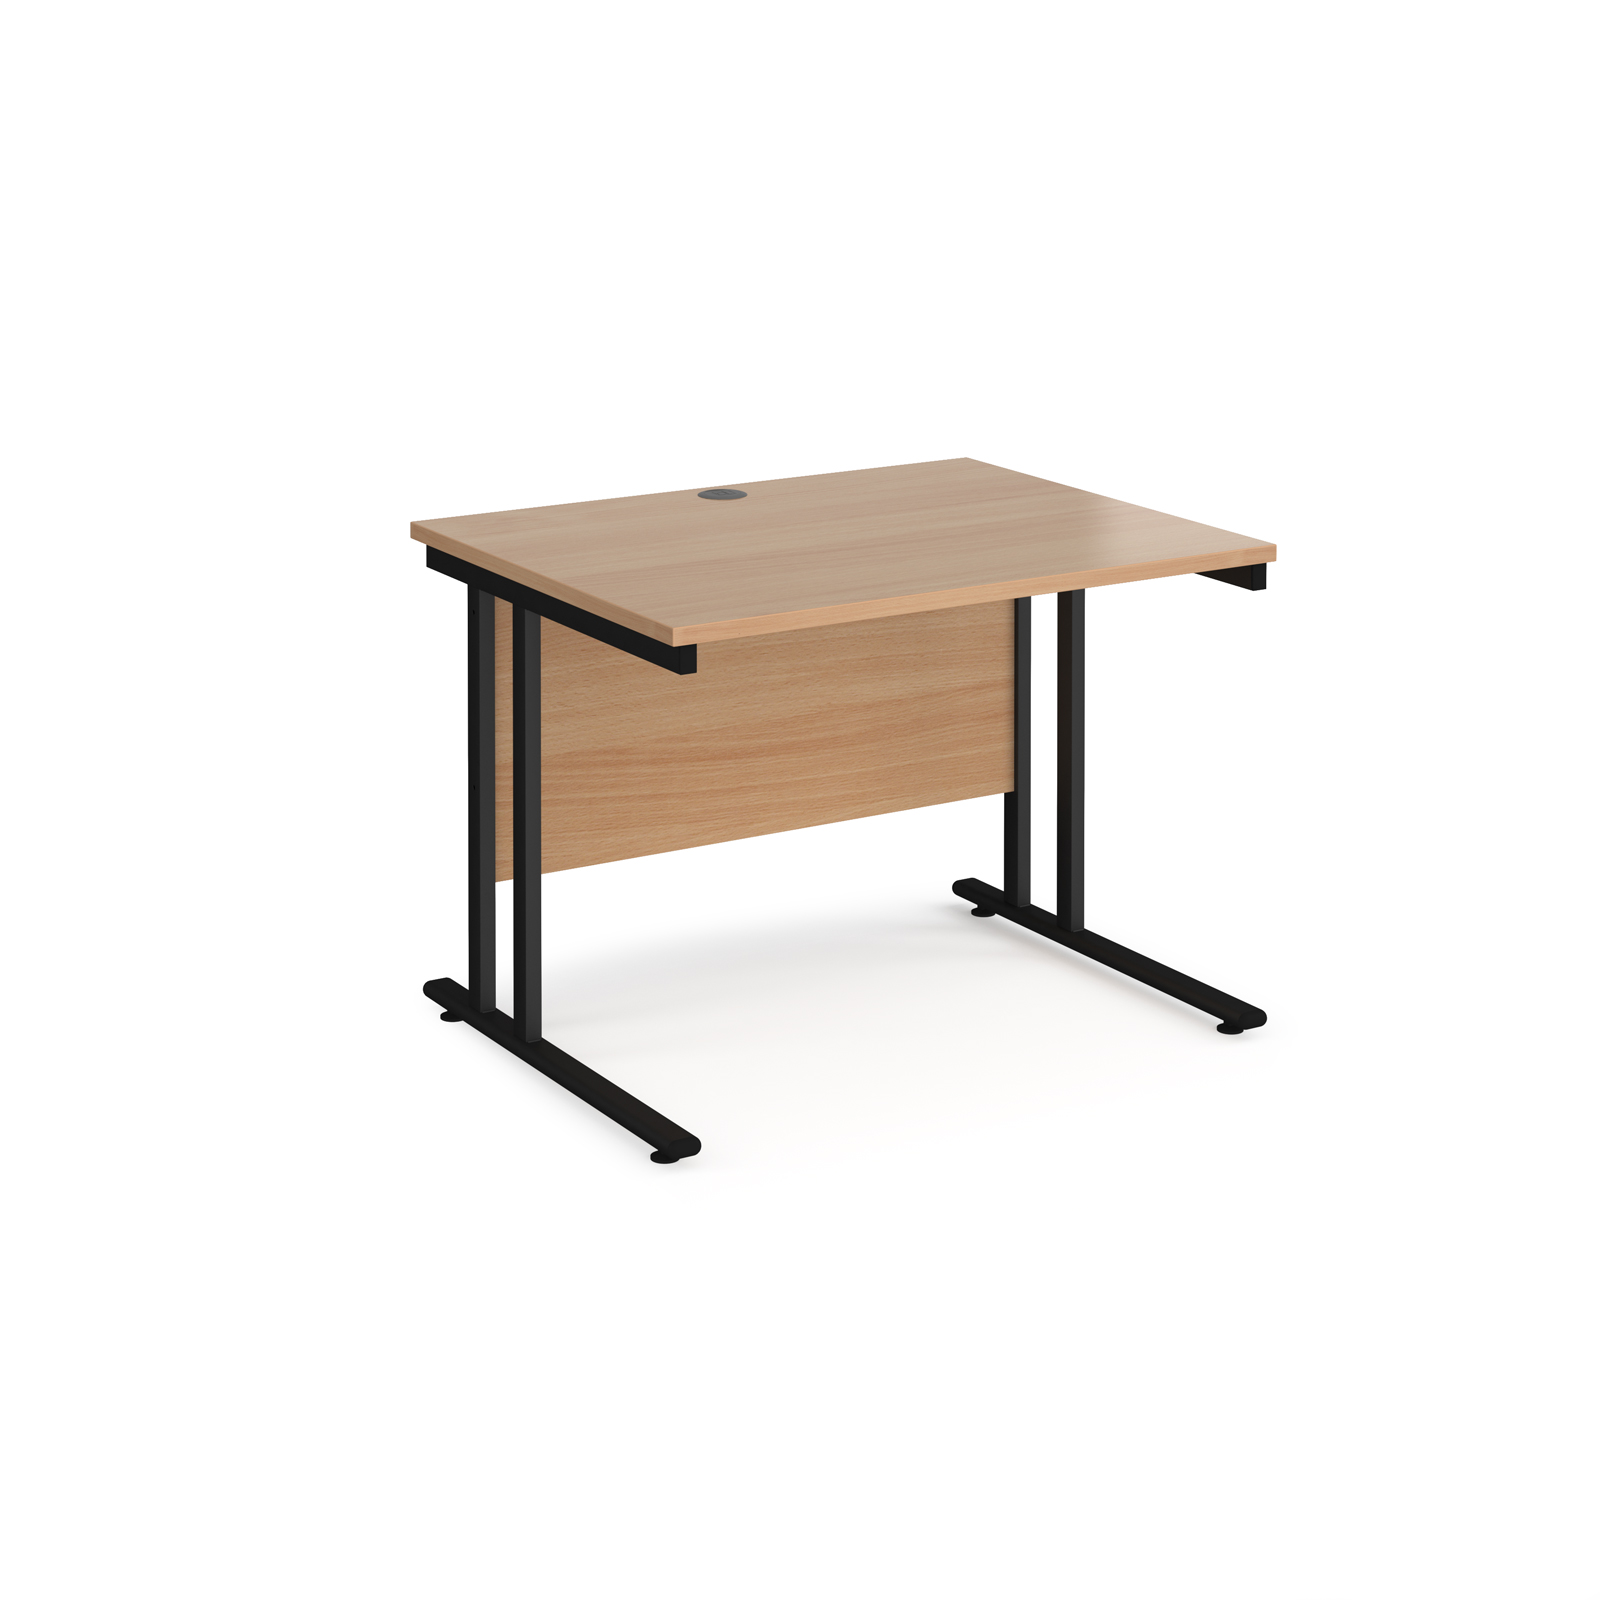 Rectangular Desks Maestro 25 straight desk 1000mm x 800mm - black cantilever leg frame, beech top